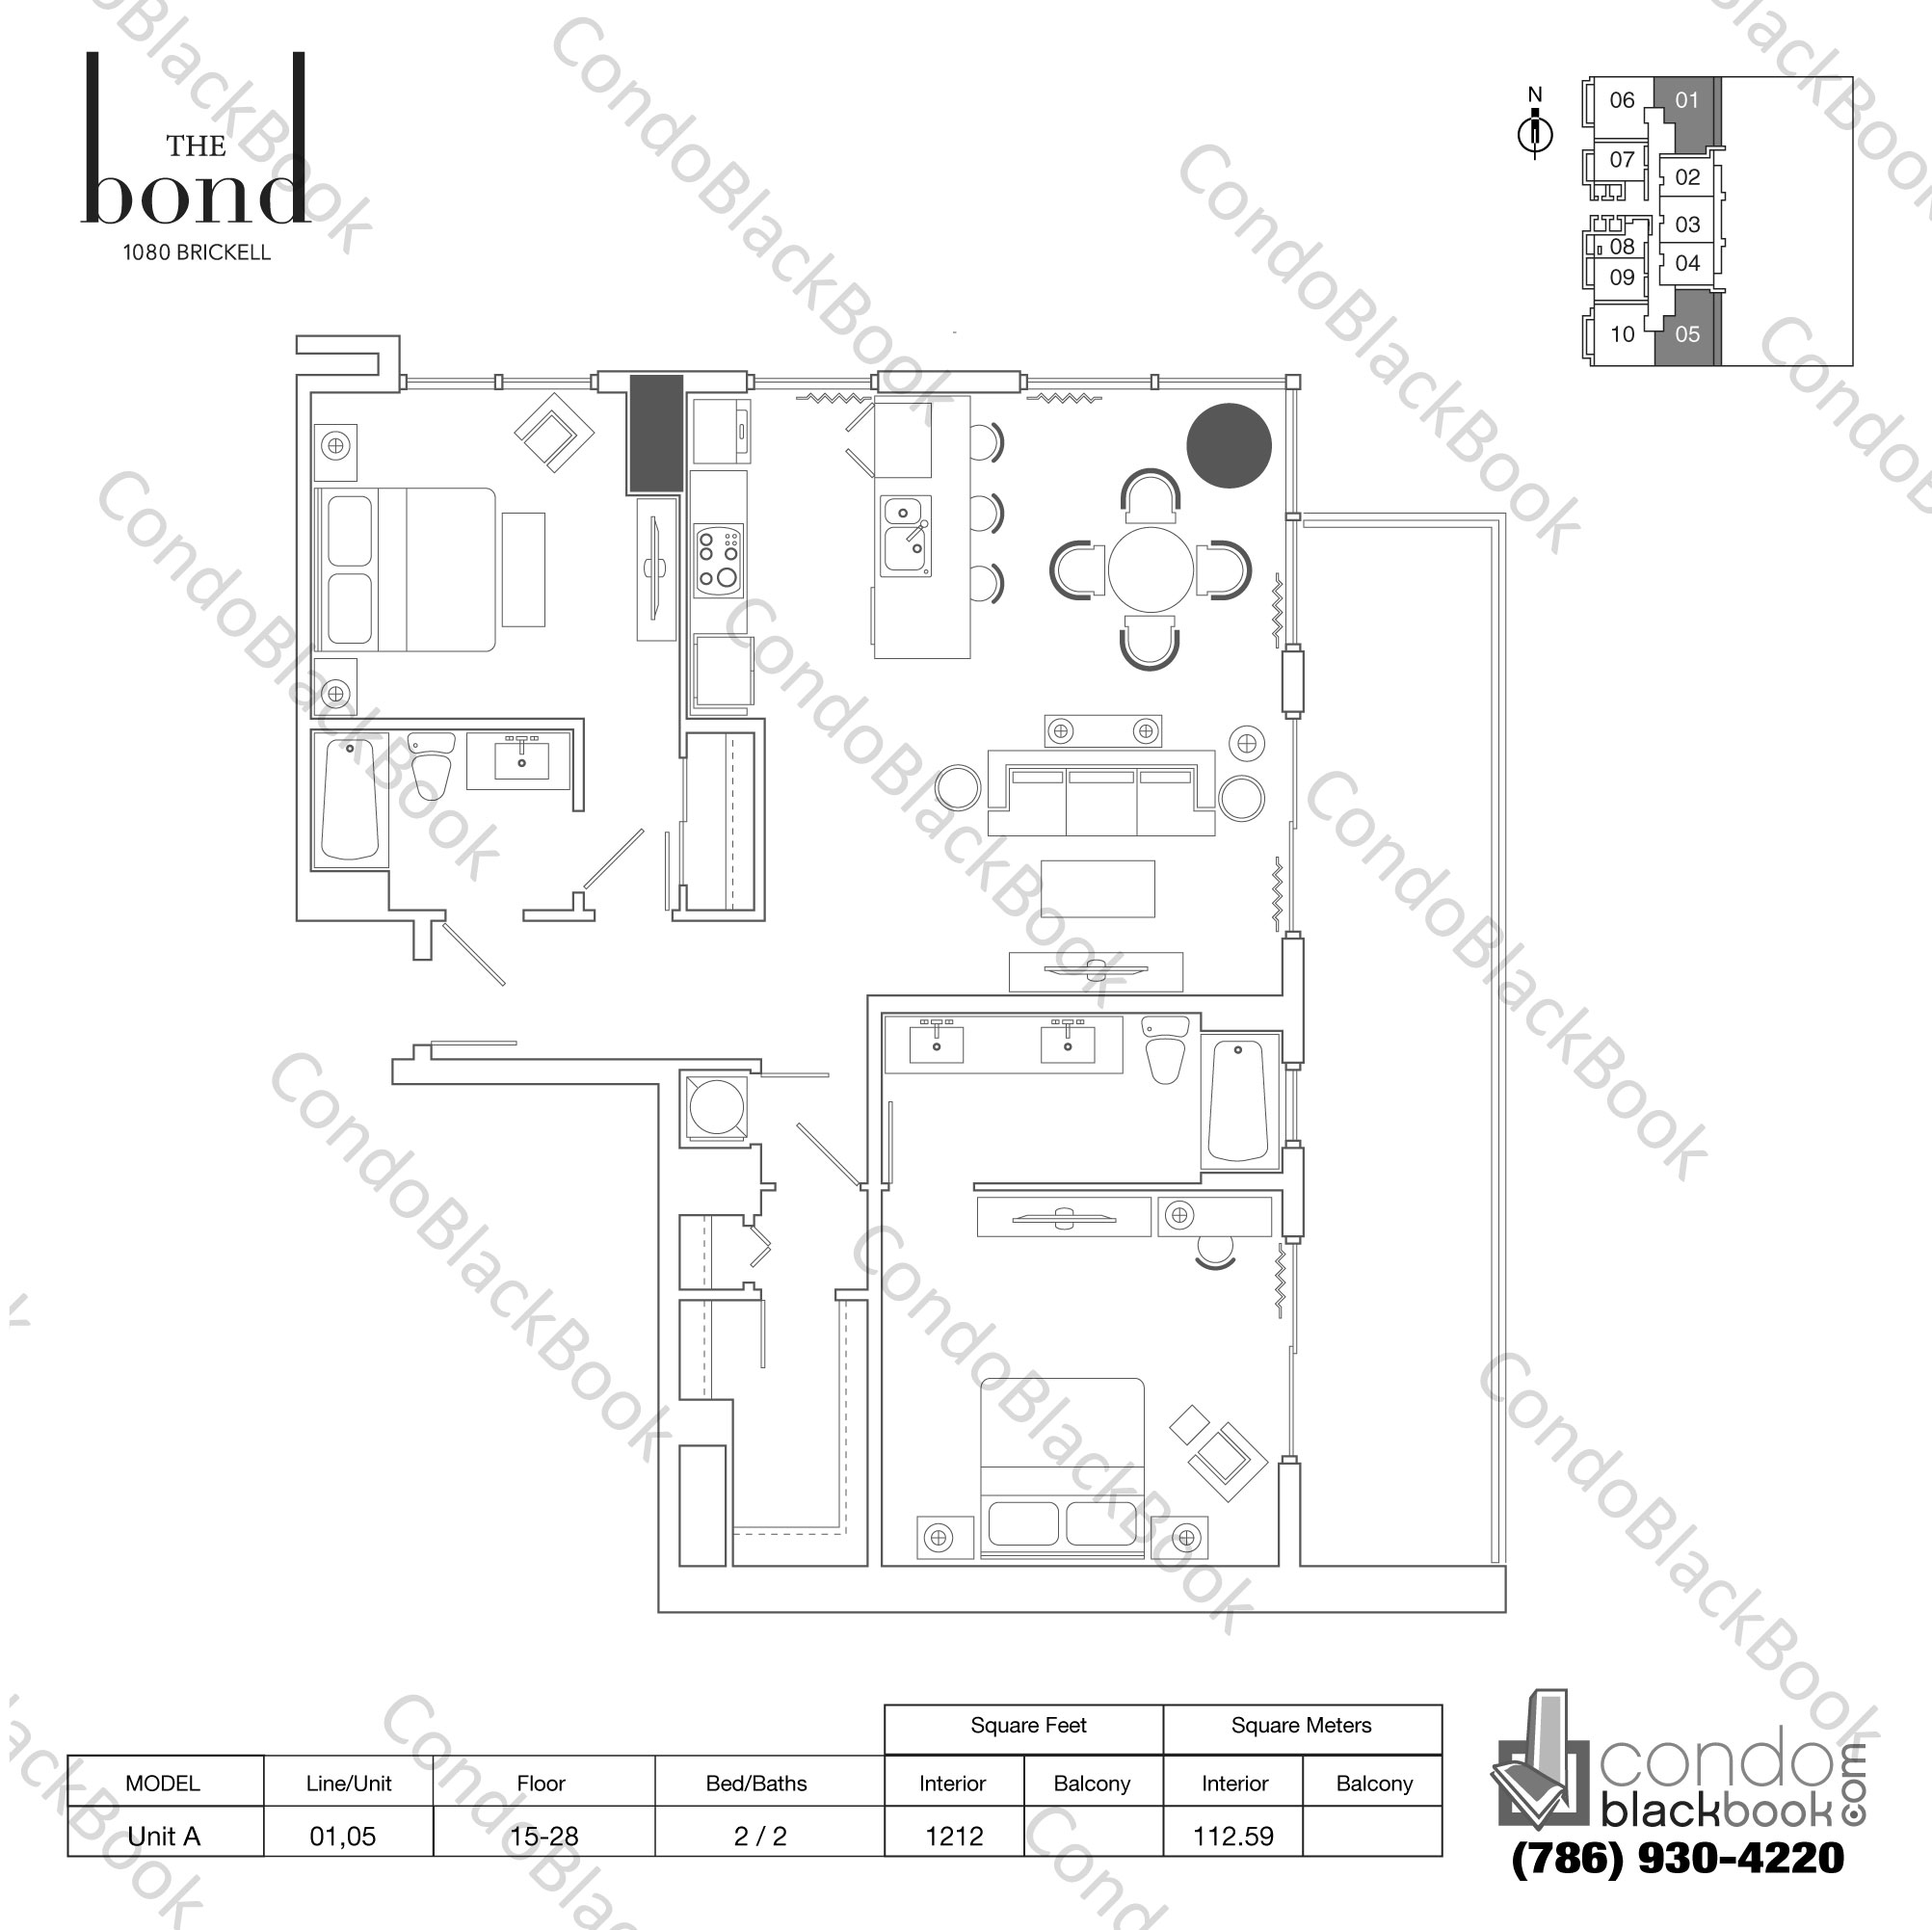 Floor plan for The Bond Brickell Miami, model UNIT A, line 01,05, 2/2 bedrooms, 1,212 sq ft